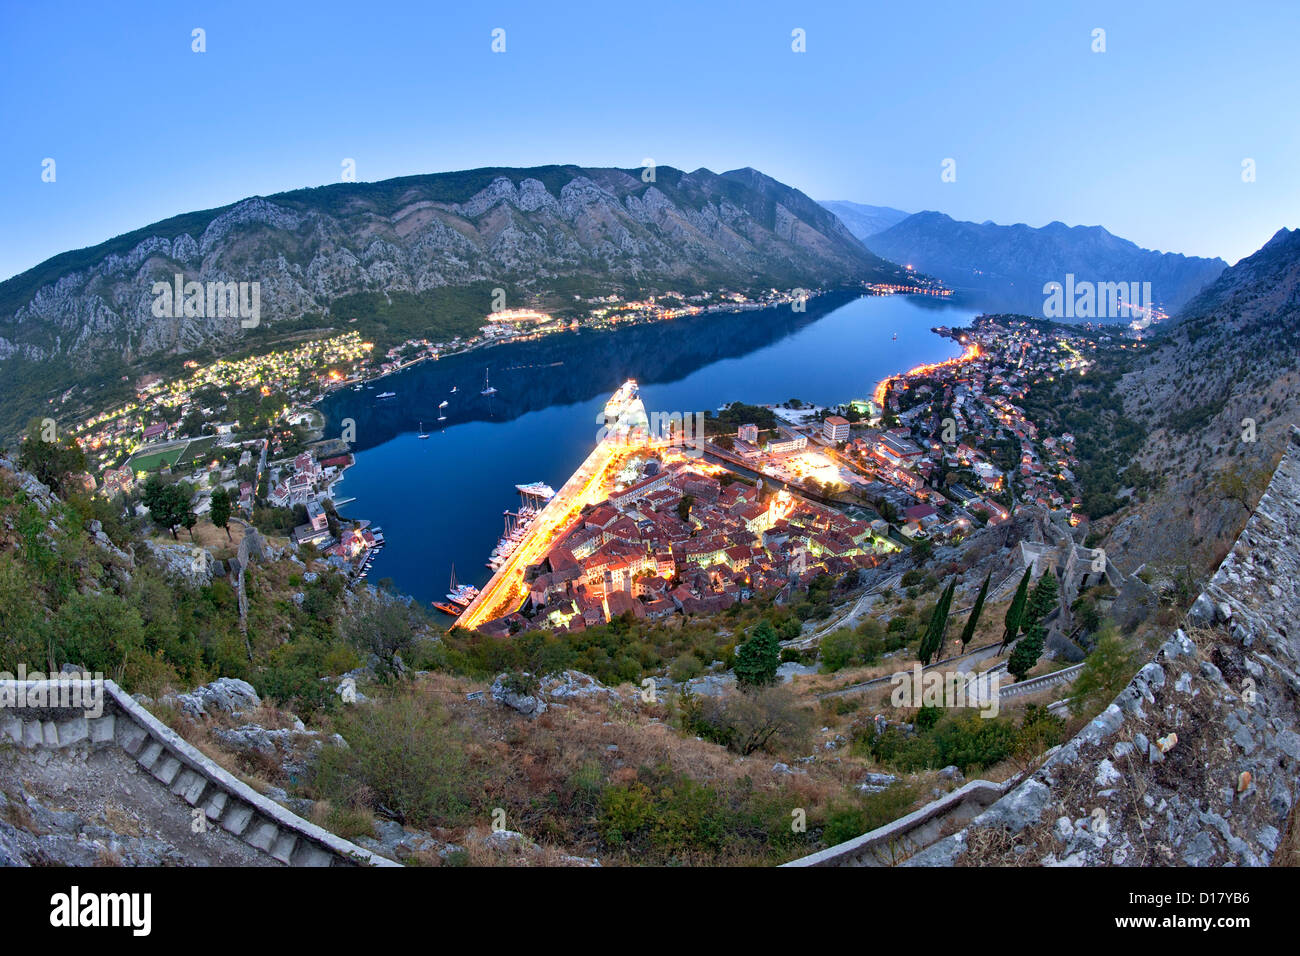 Dawn view of Kotor Bay and Kotor town in Montenegro. Stock Photo